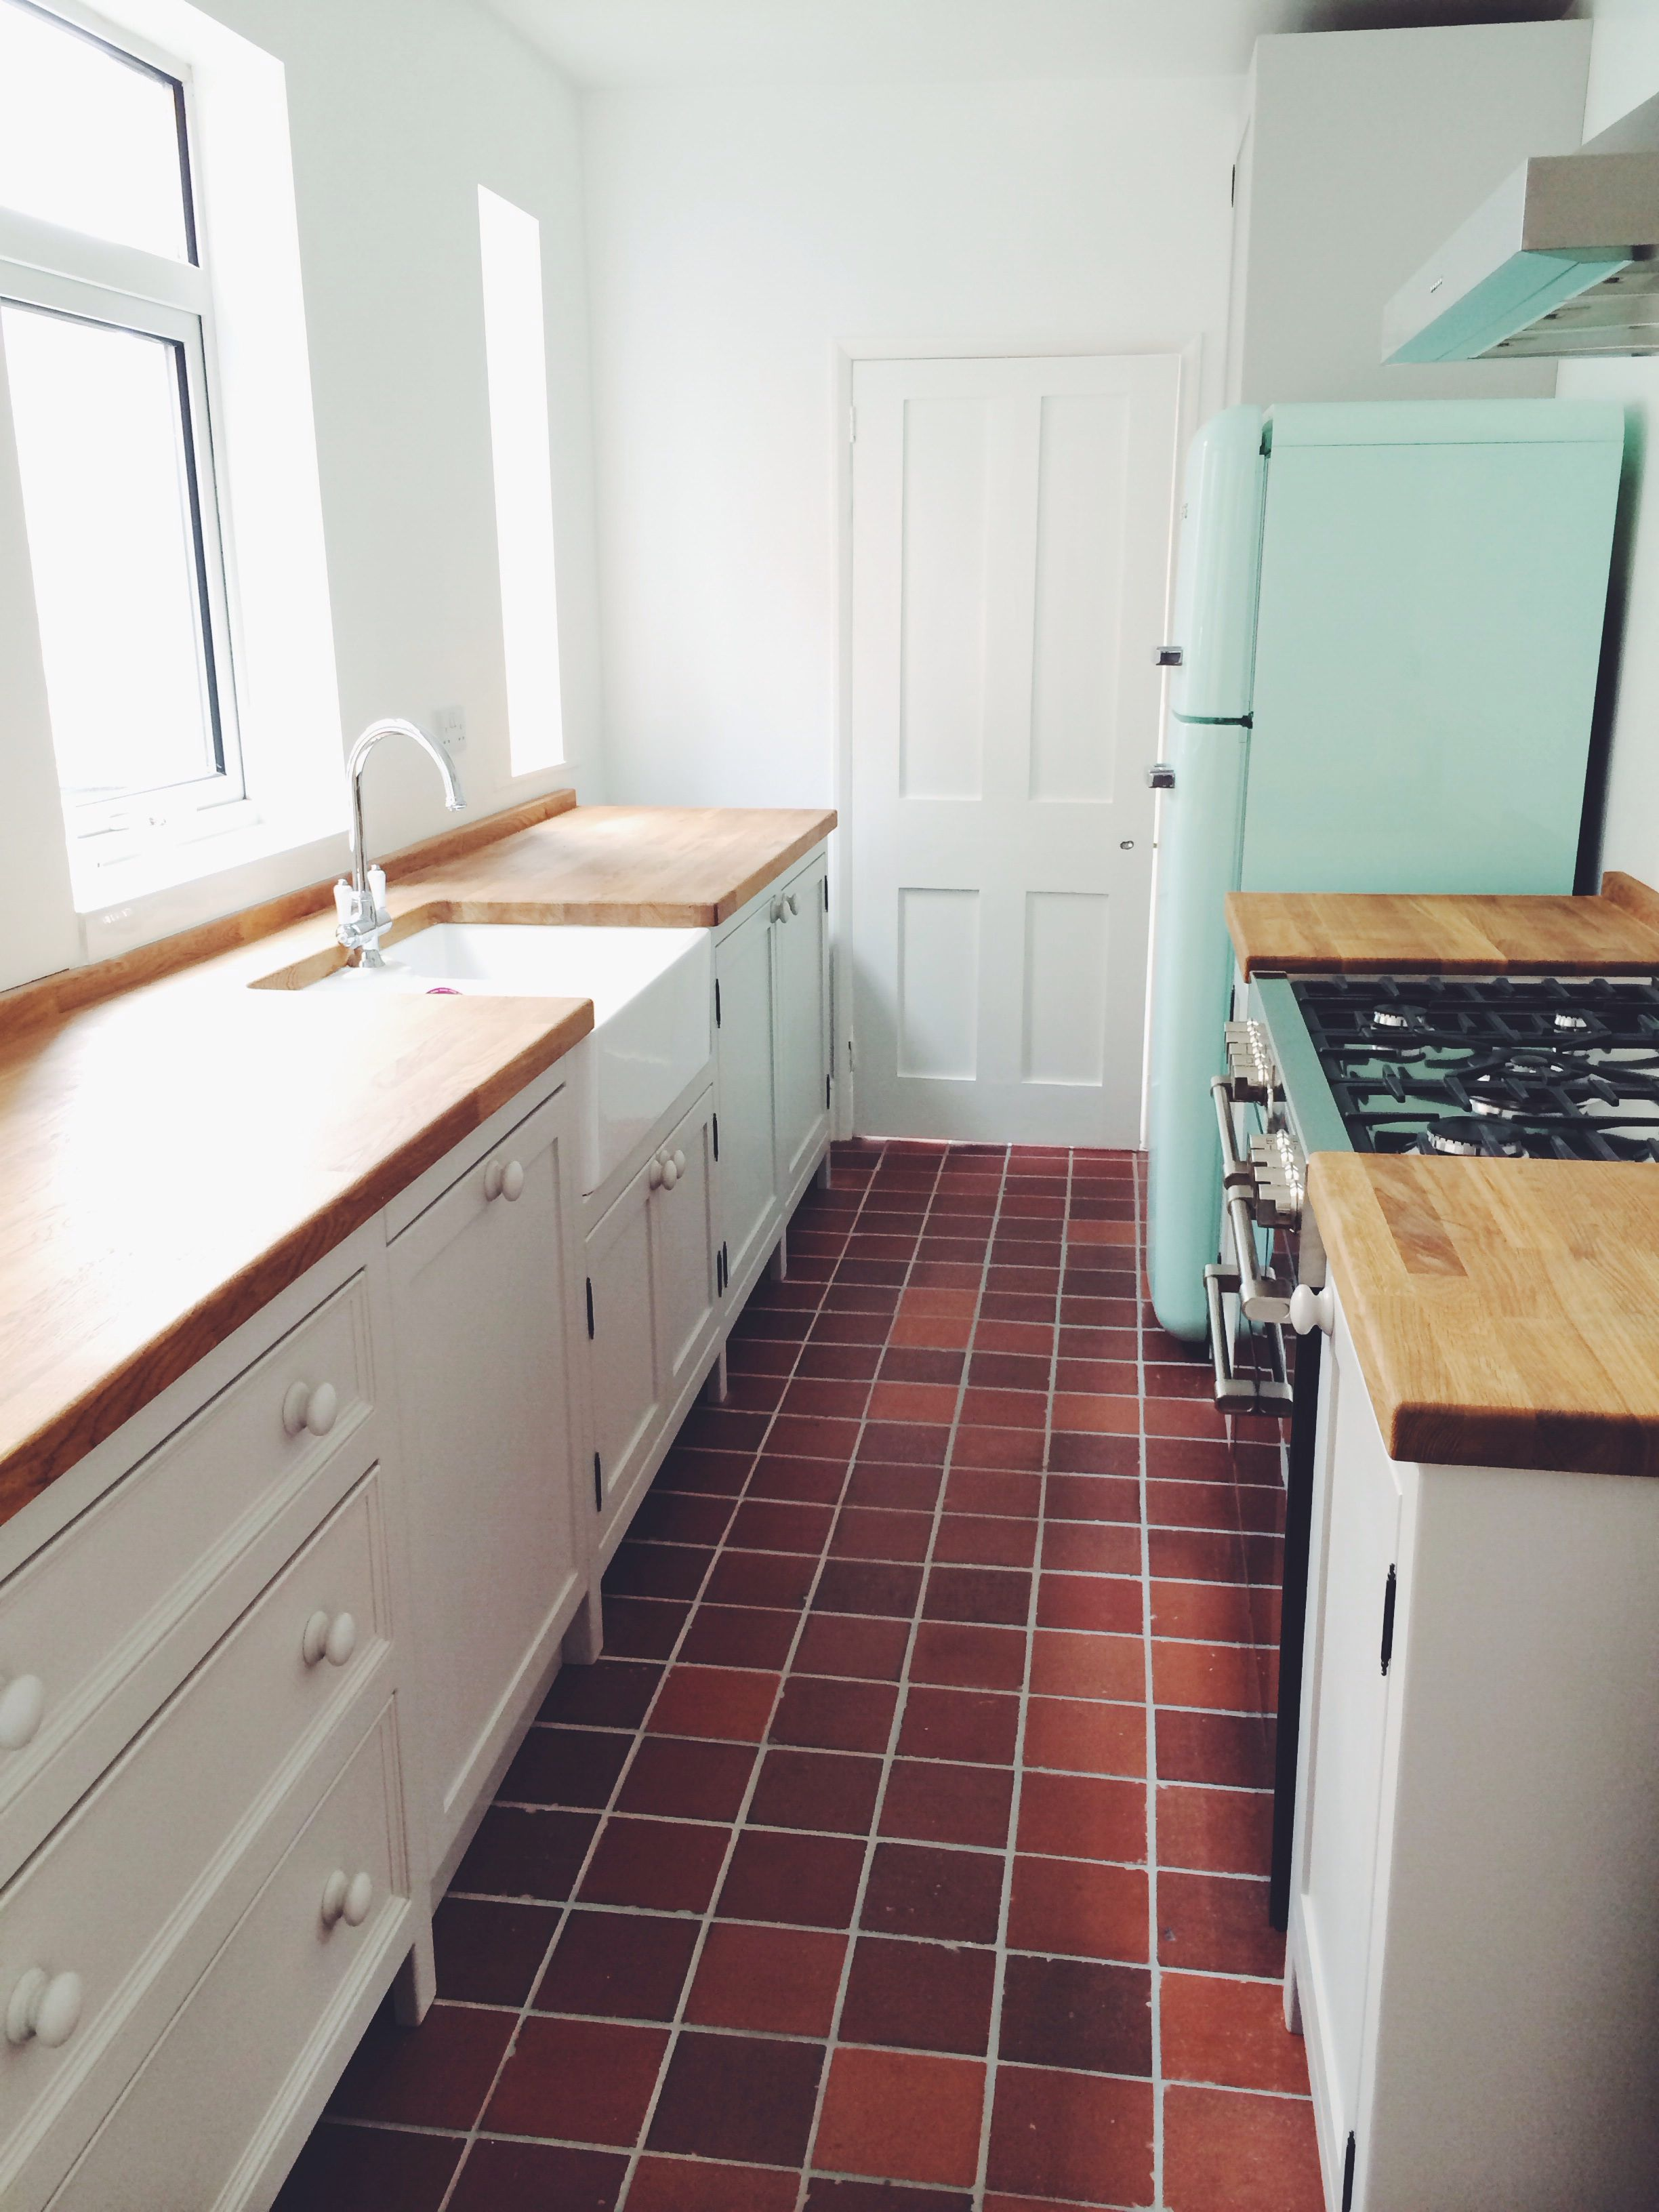 Olive Branch Wetherby freestanding kitchen painted in